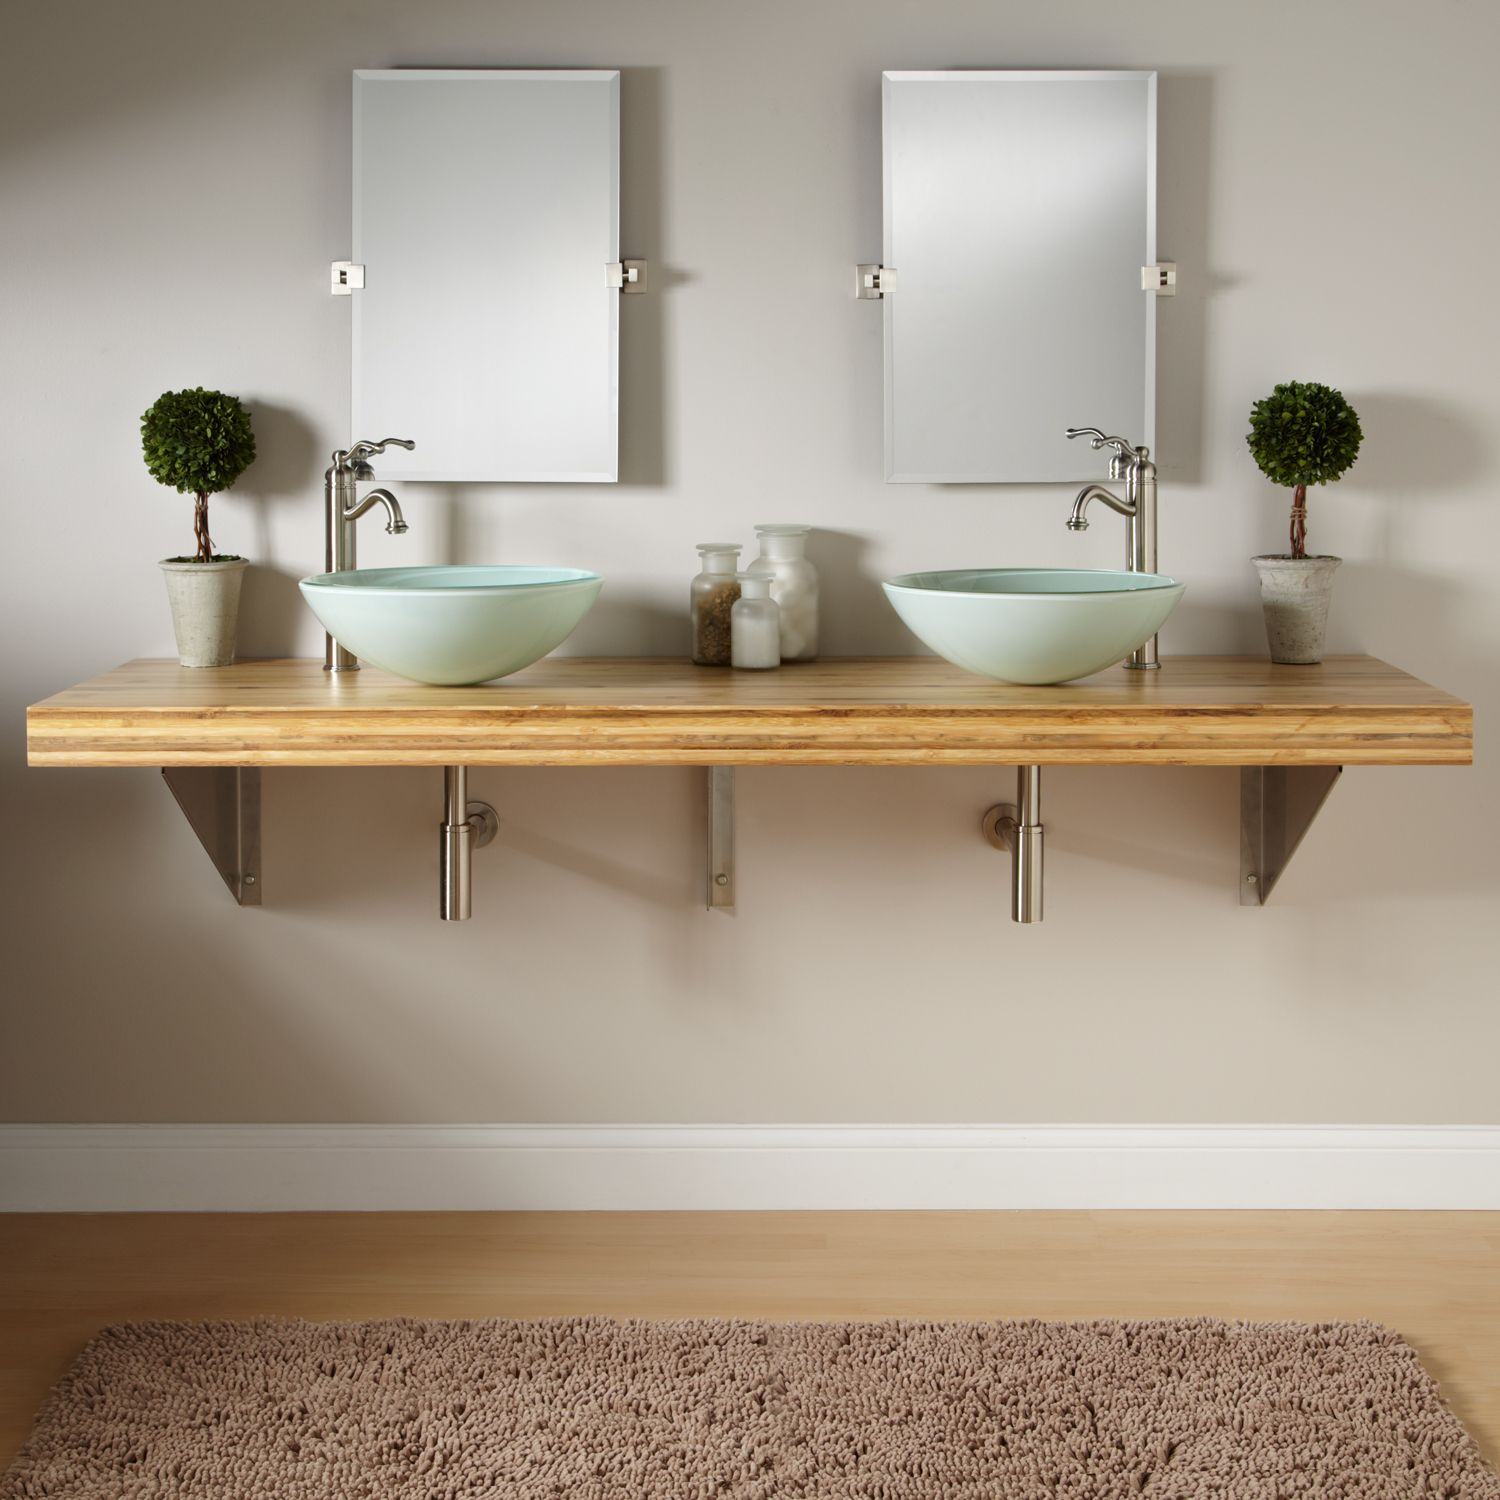 1 224 95 Bamboo Wall Mount Vanity For Vessel Sinks Triangular